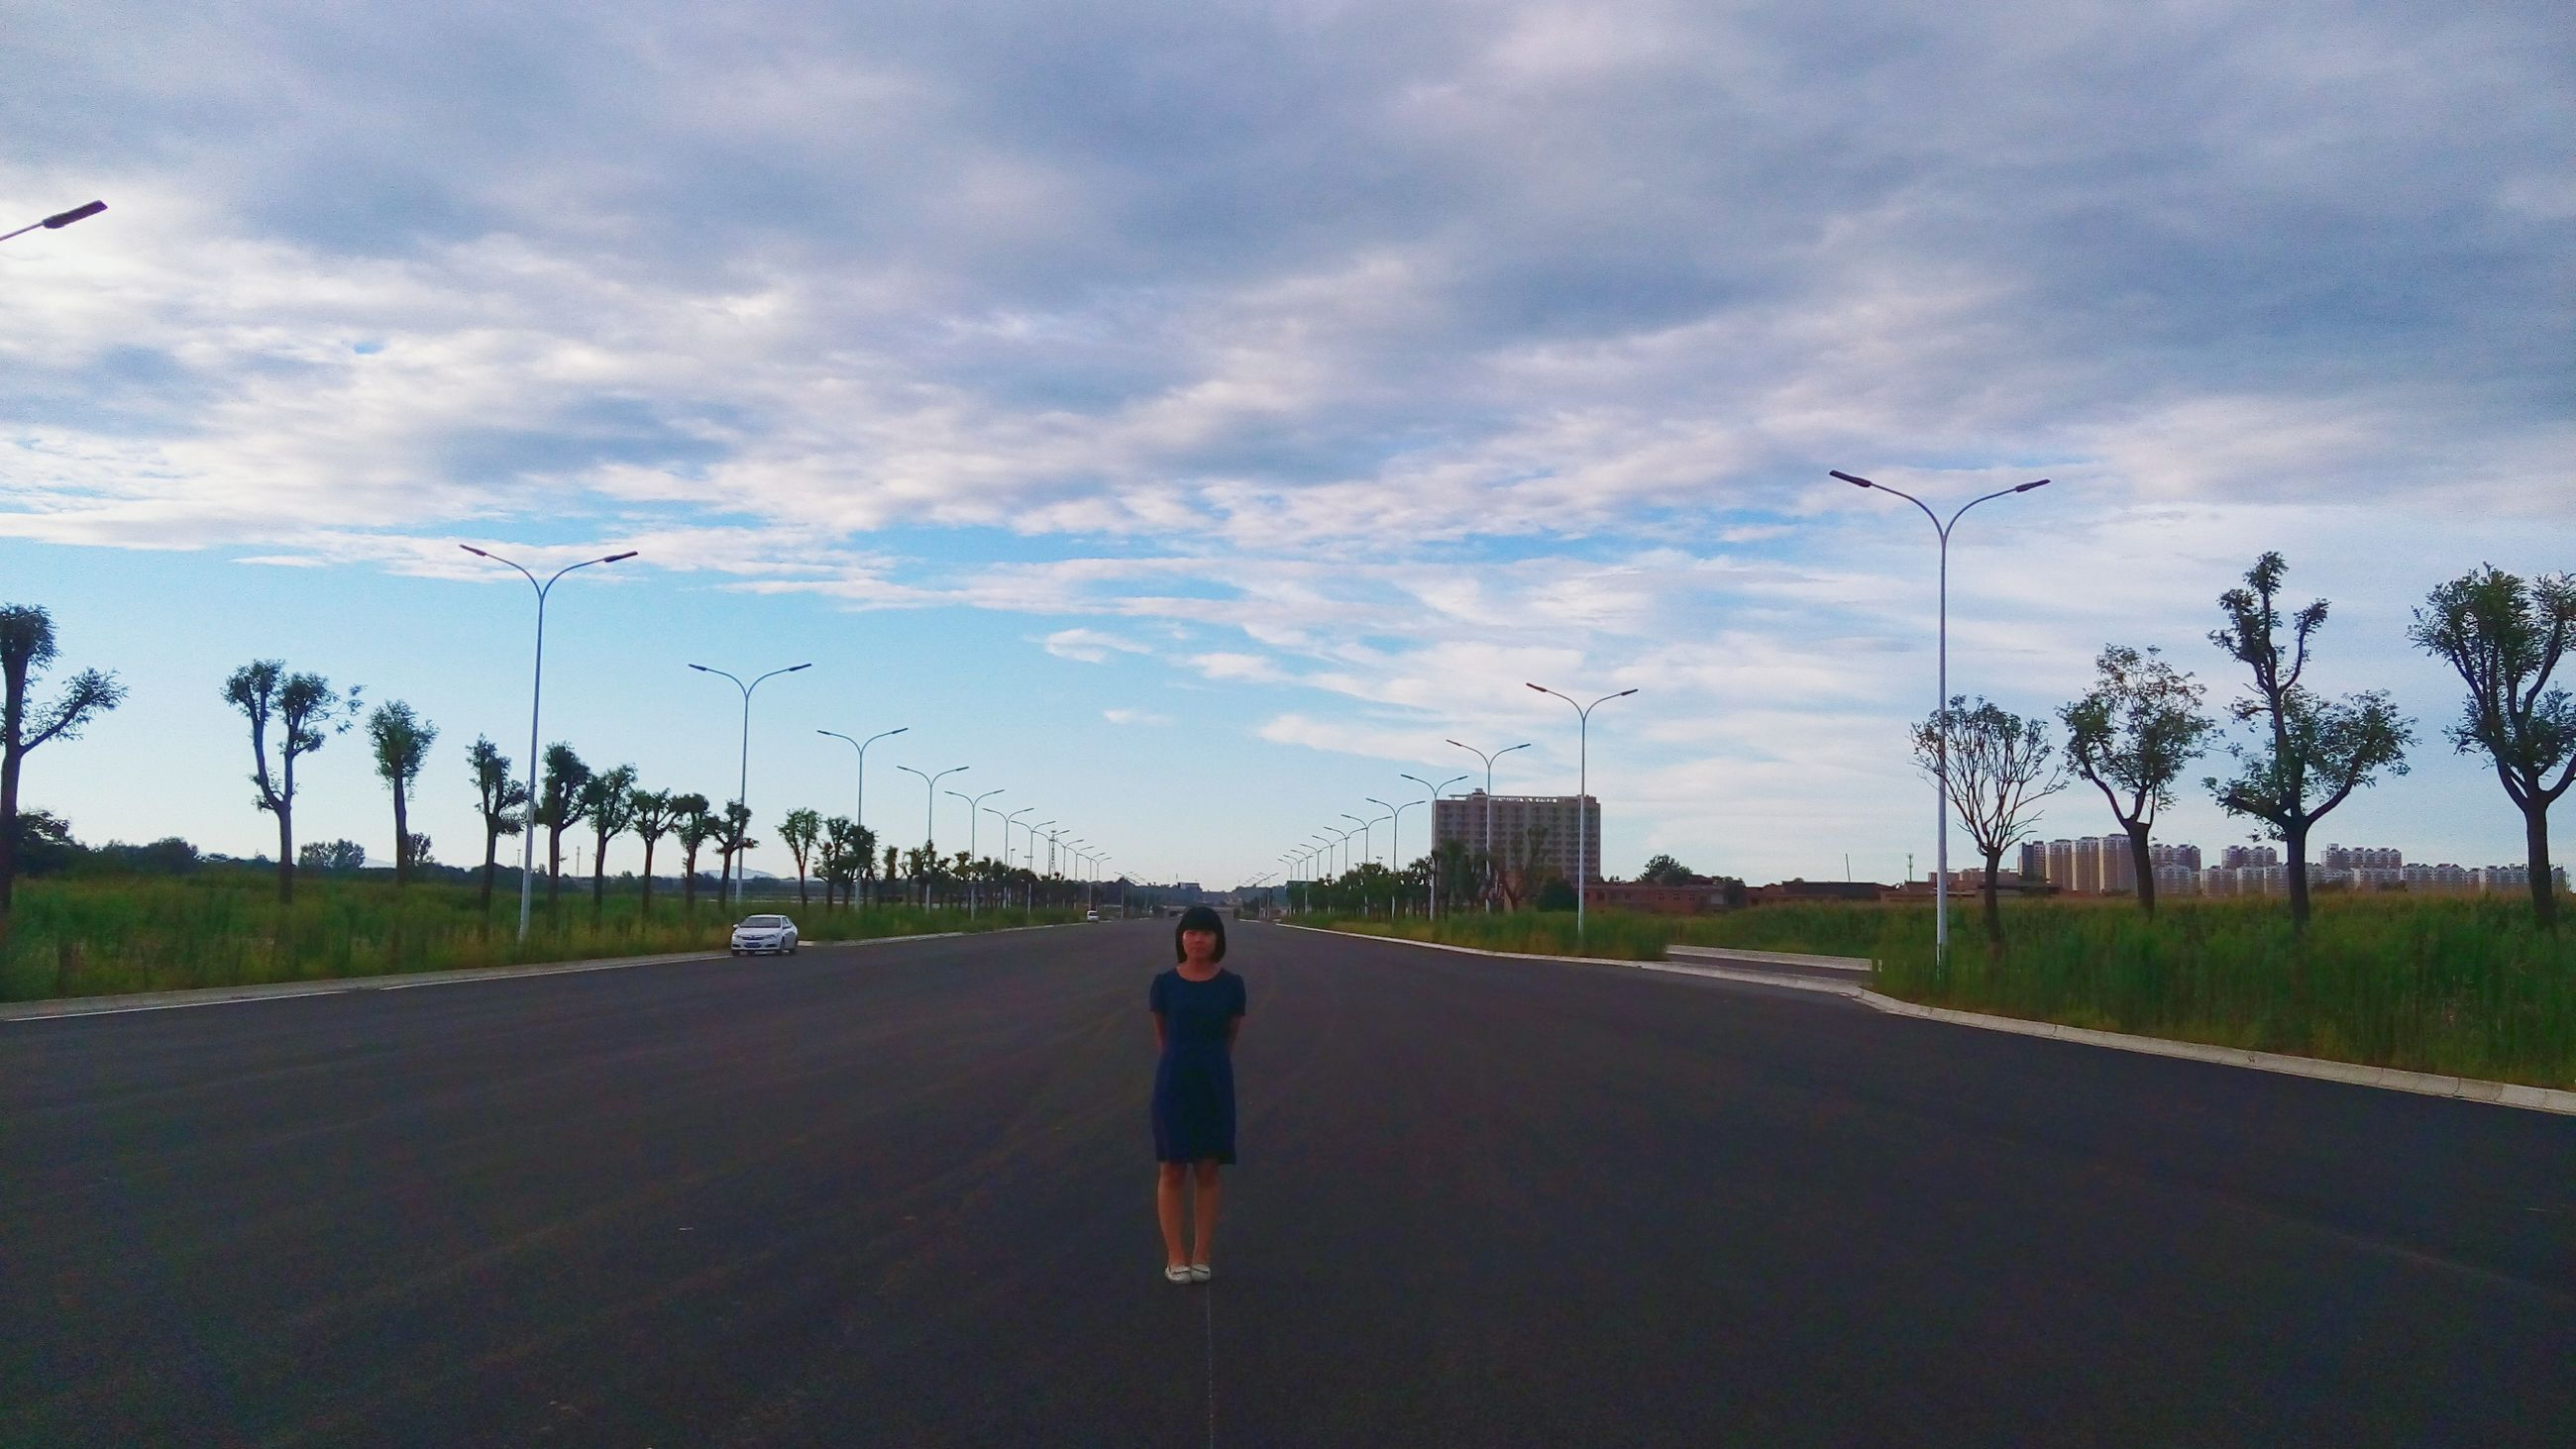 flying, sky, cloud - sky, mid-air, transportation, the way forward, bird, road, cloud, cloudy, road marking, full length, lifestyles, animal themes, diminishing perspective, street, leisure activity, animals in the wild